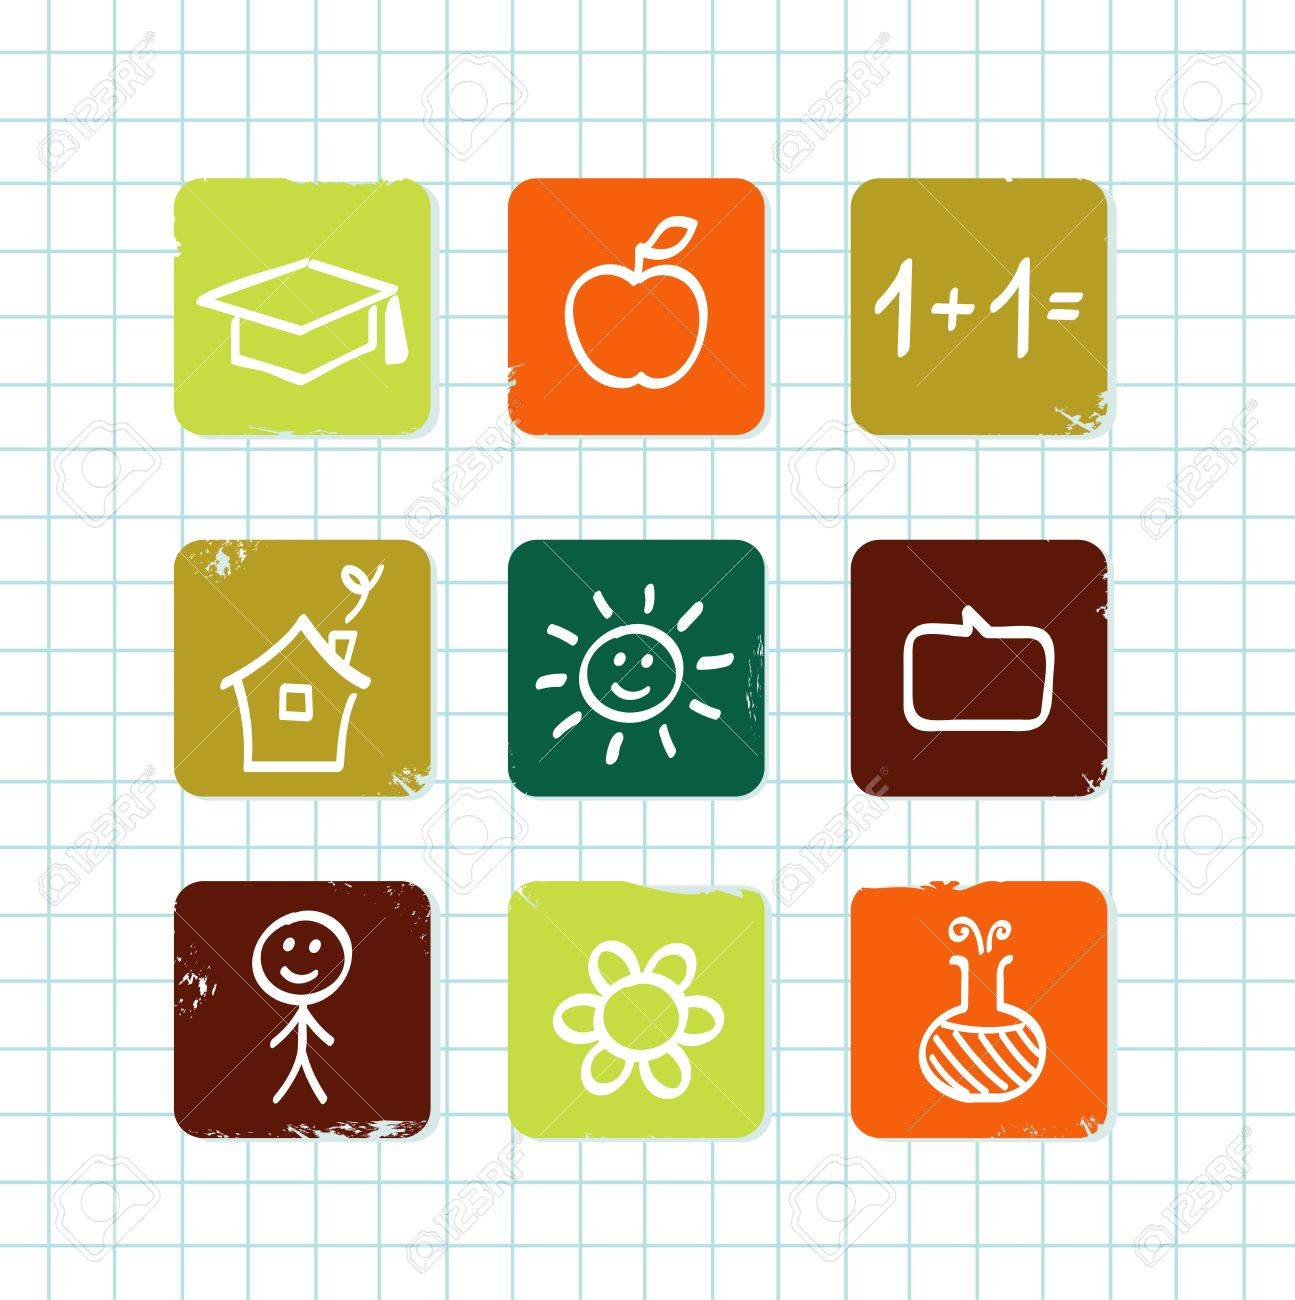 Hand drawn School icons. Isolated on school grid. Stock Vector - 10128358